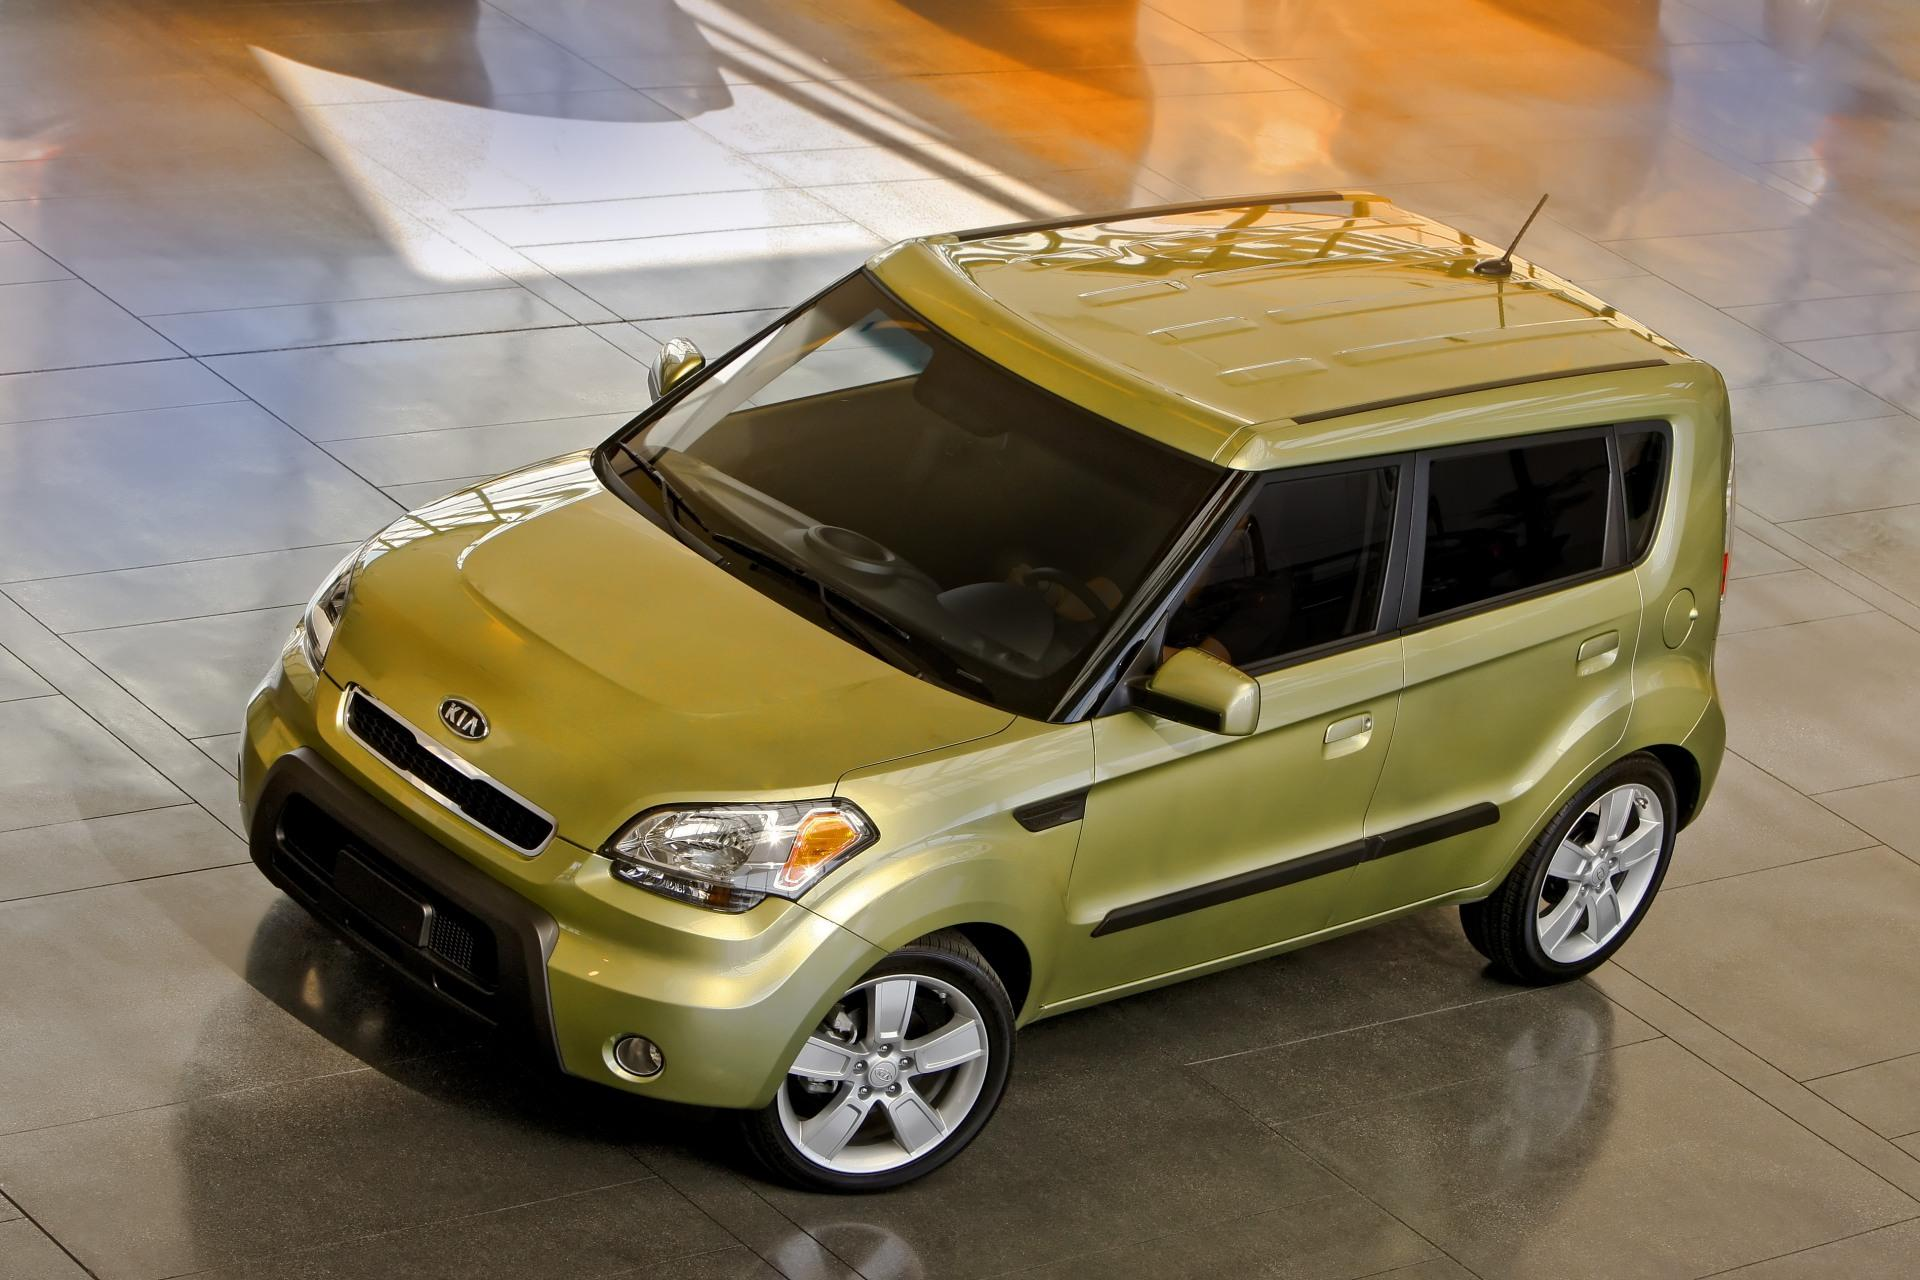 2010 kia soul technical specifications and data engine dimensions and mechanical details. Black Bedroom Furniture Sets. Home Design Ideas